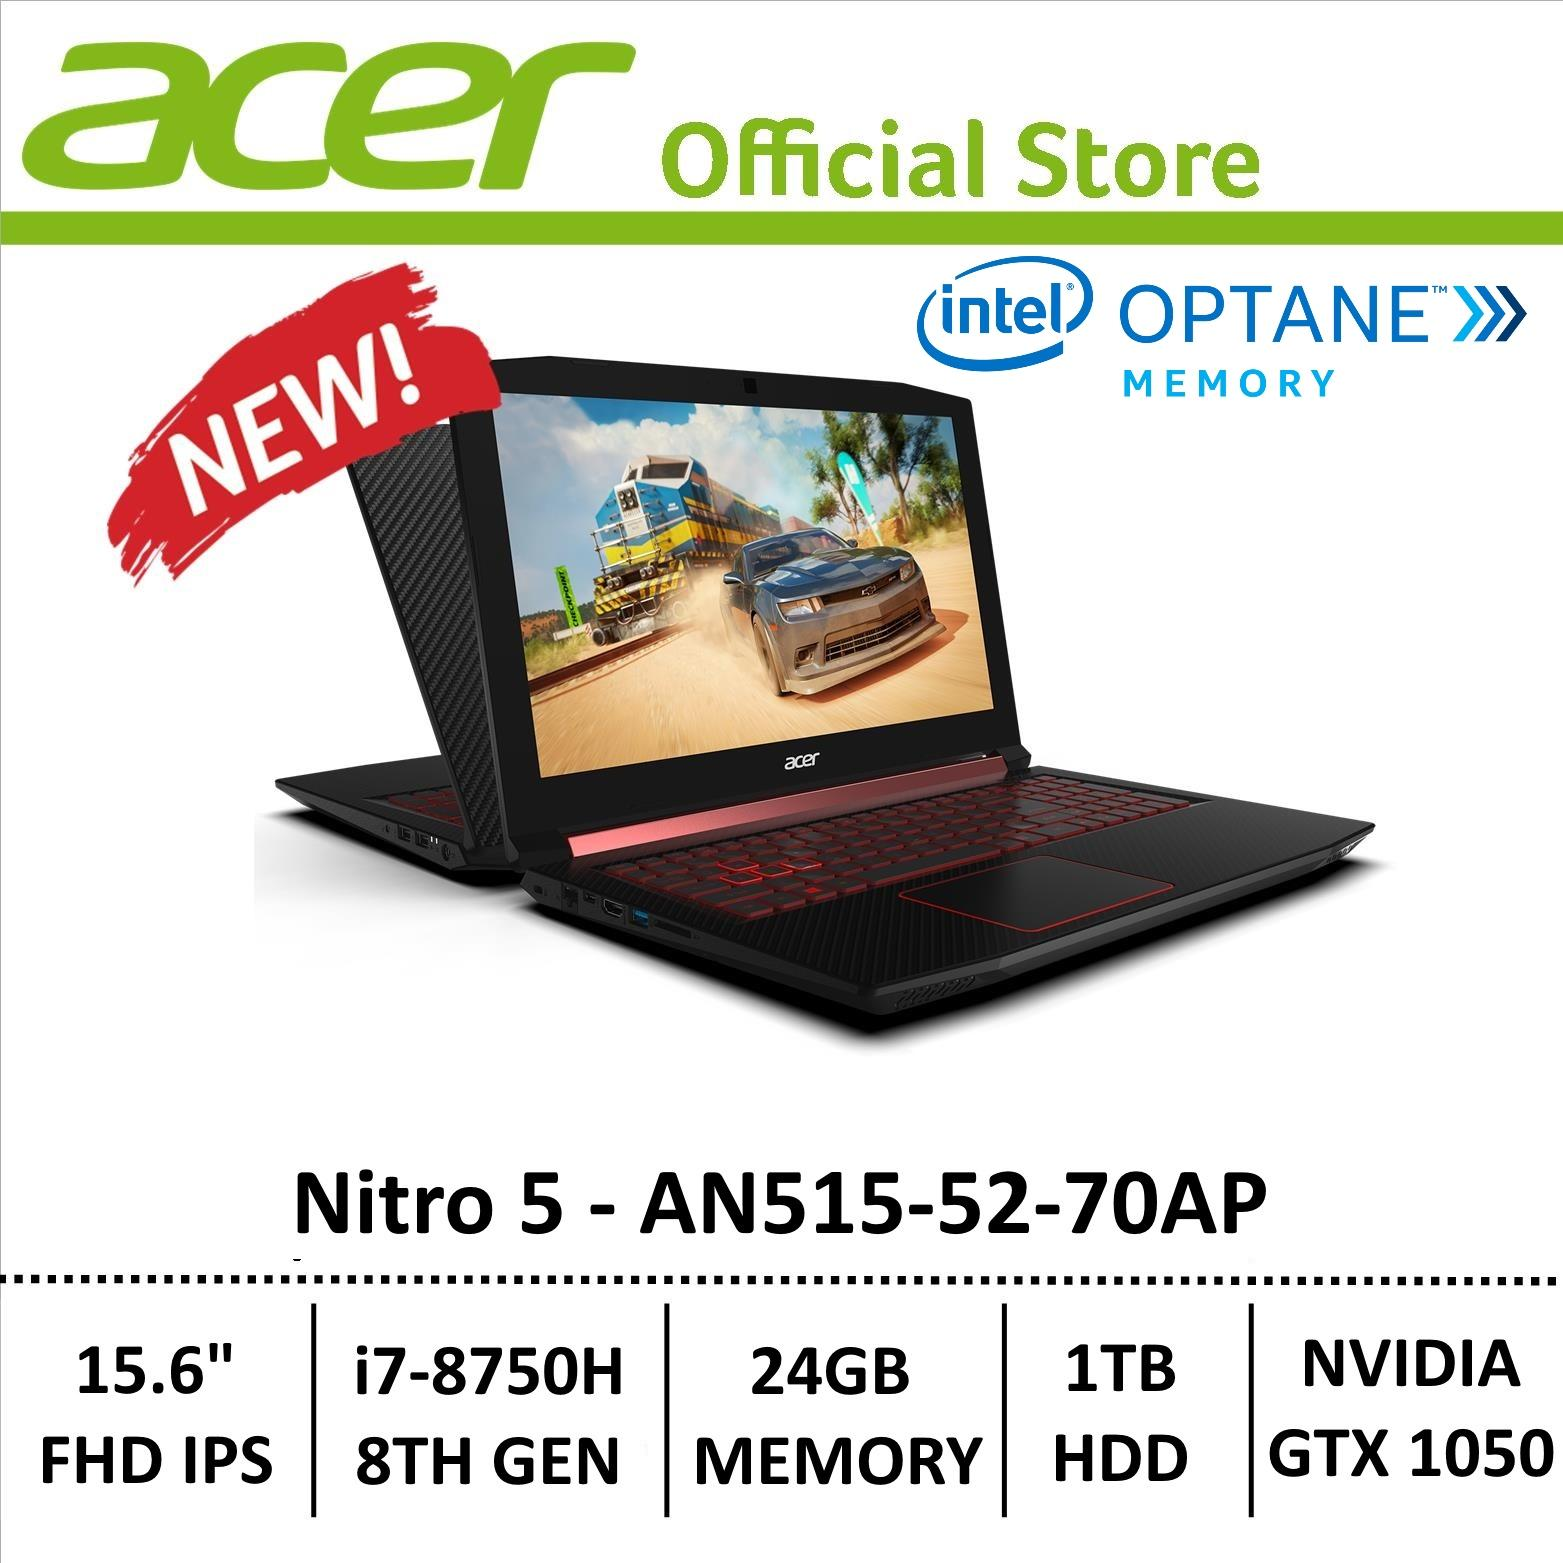 Acer Aspire Nitro 5 An515-52-70ap Gaming Laptop - 8th Generation Core I7+ Processor With Gtx 1050 Graphics (optane Memory) By Acer Official Store.